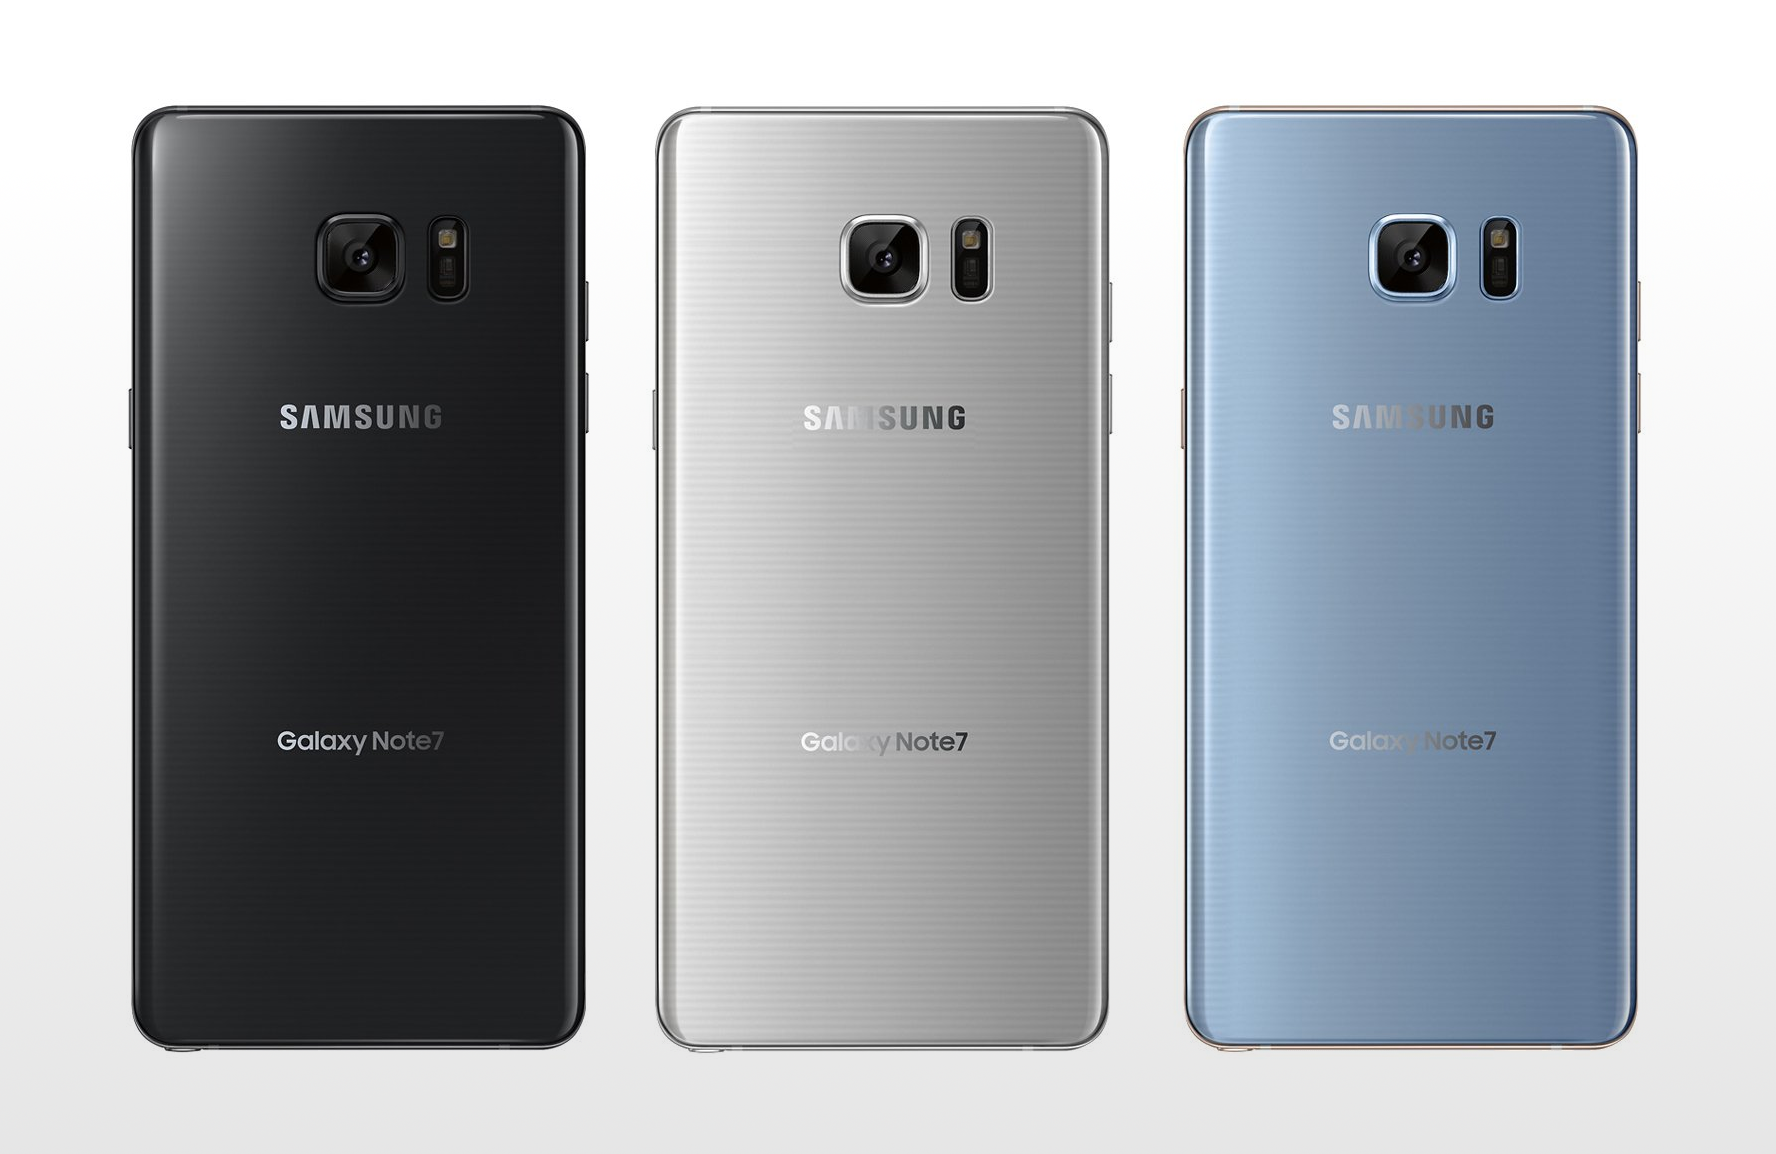 samsung galaxy note 7 could cost 50 more than the s7 edge